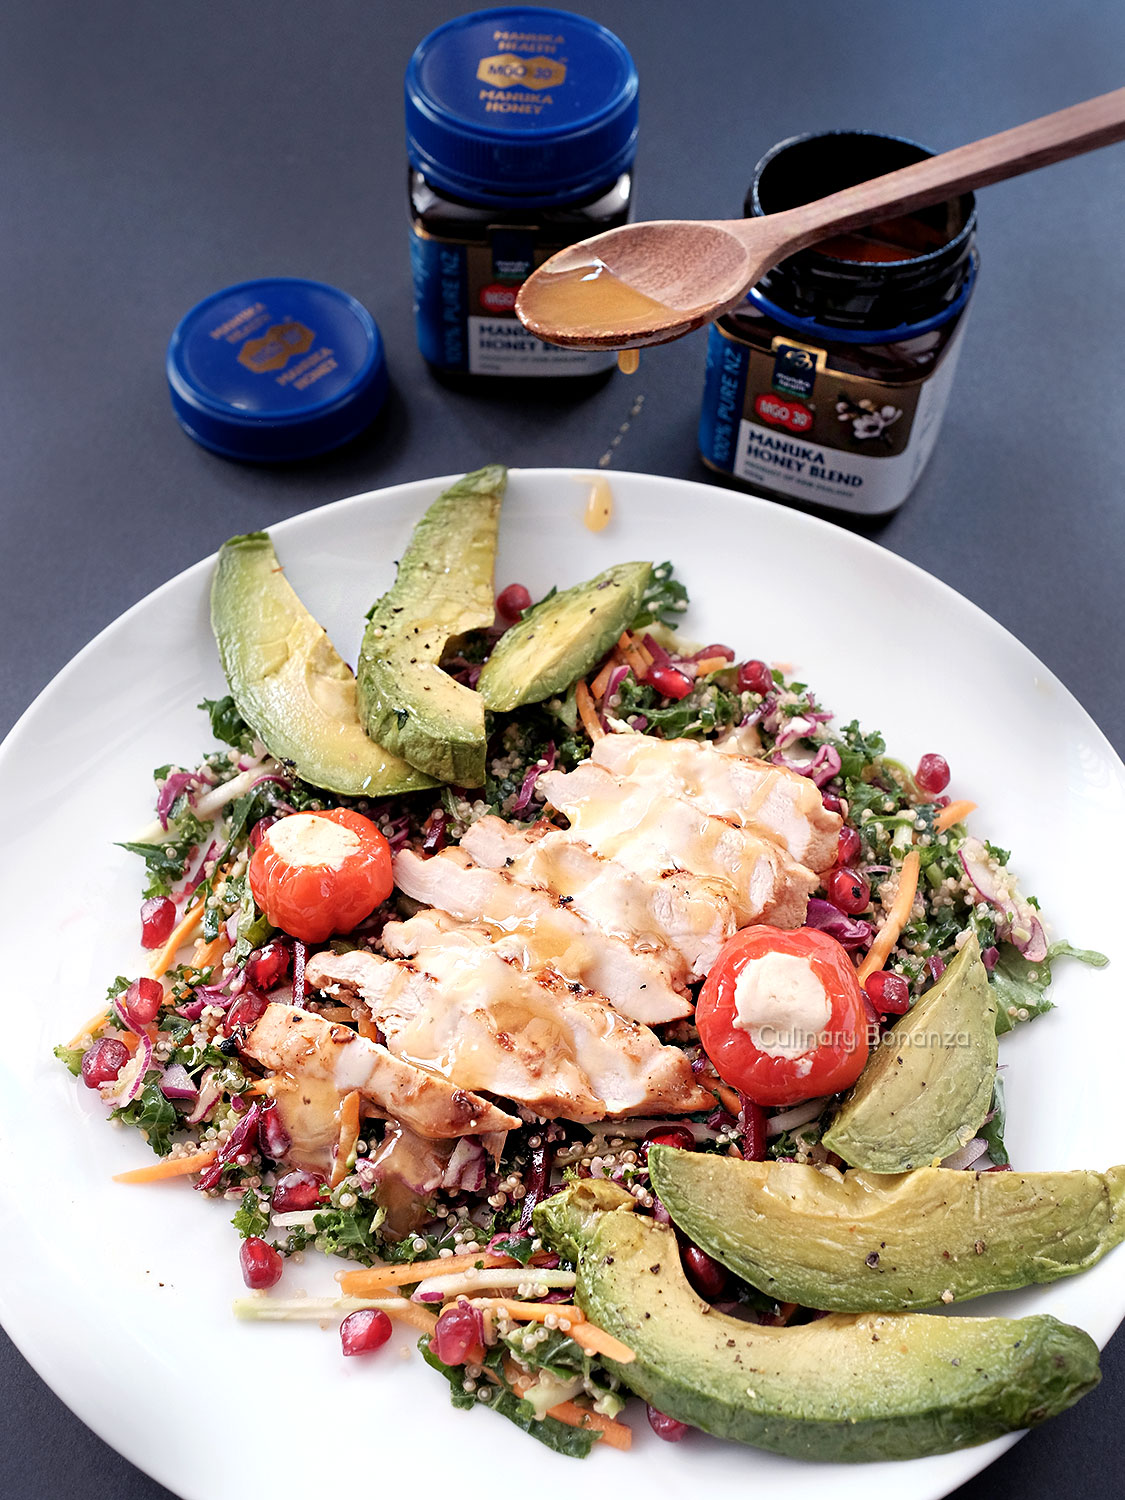 Chopped Salad with Grilled Chicken and Honey Lemon Tahini Dressing (www.culinarybonanza.com)